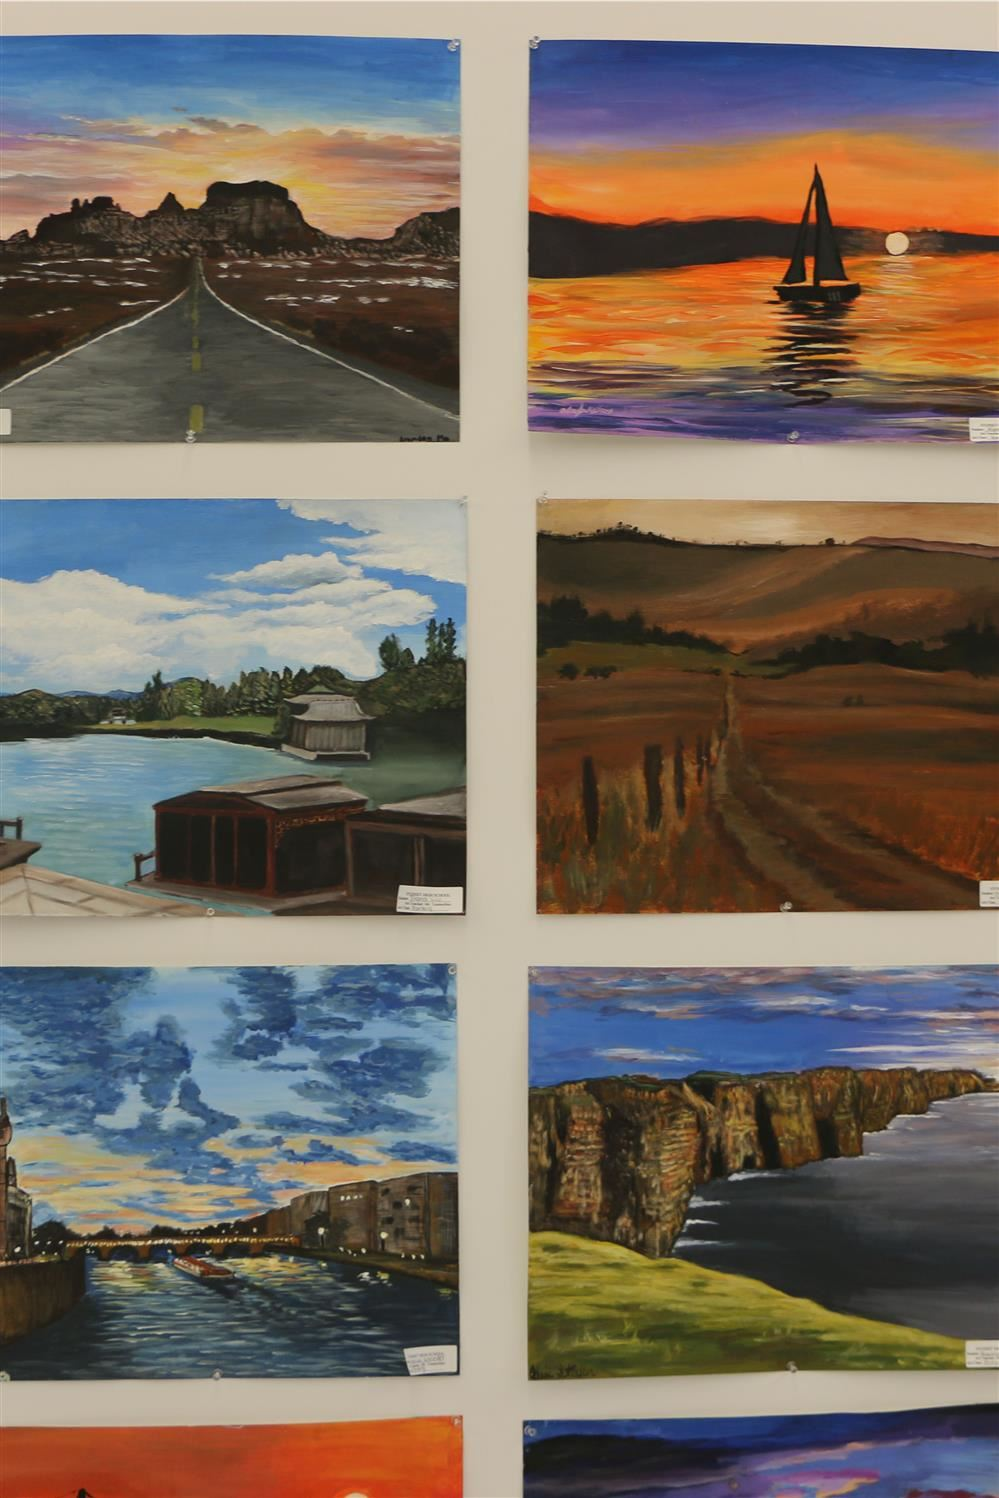 Selection of paintings done by art students